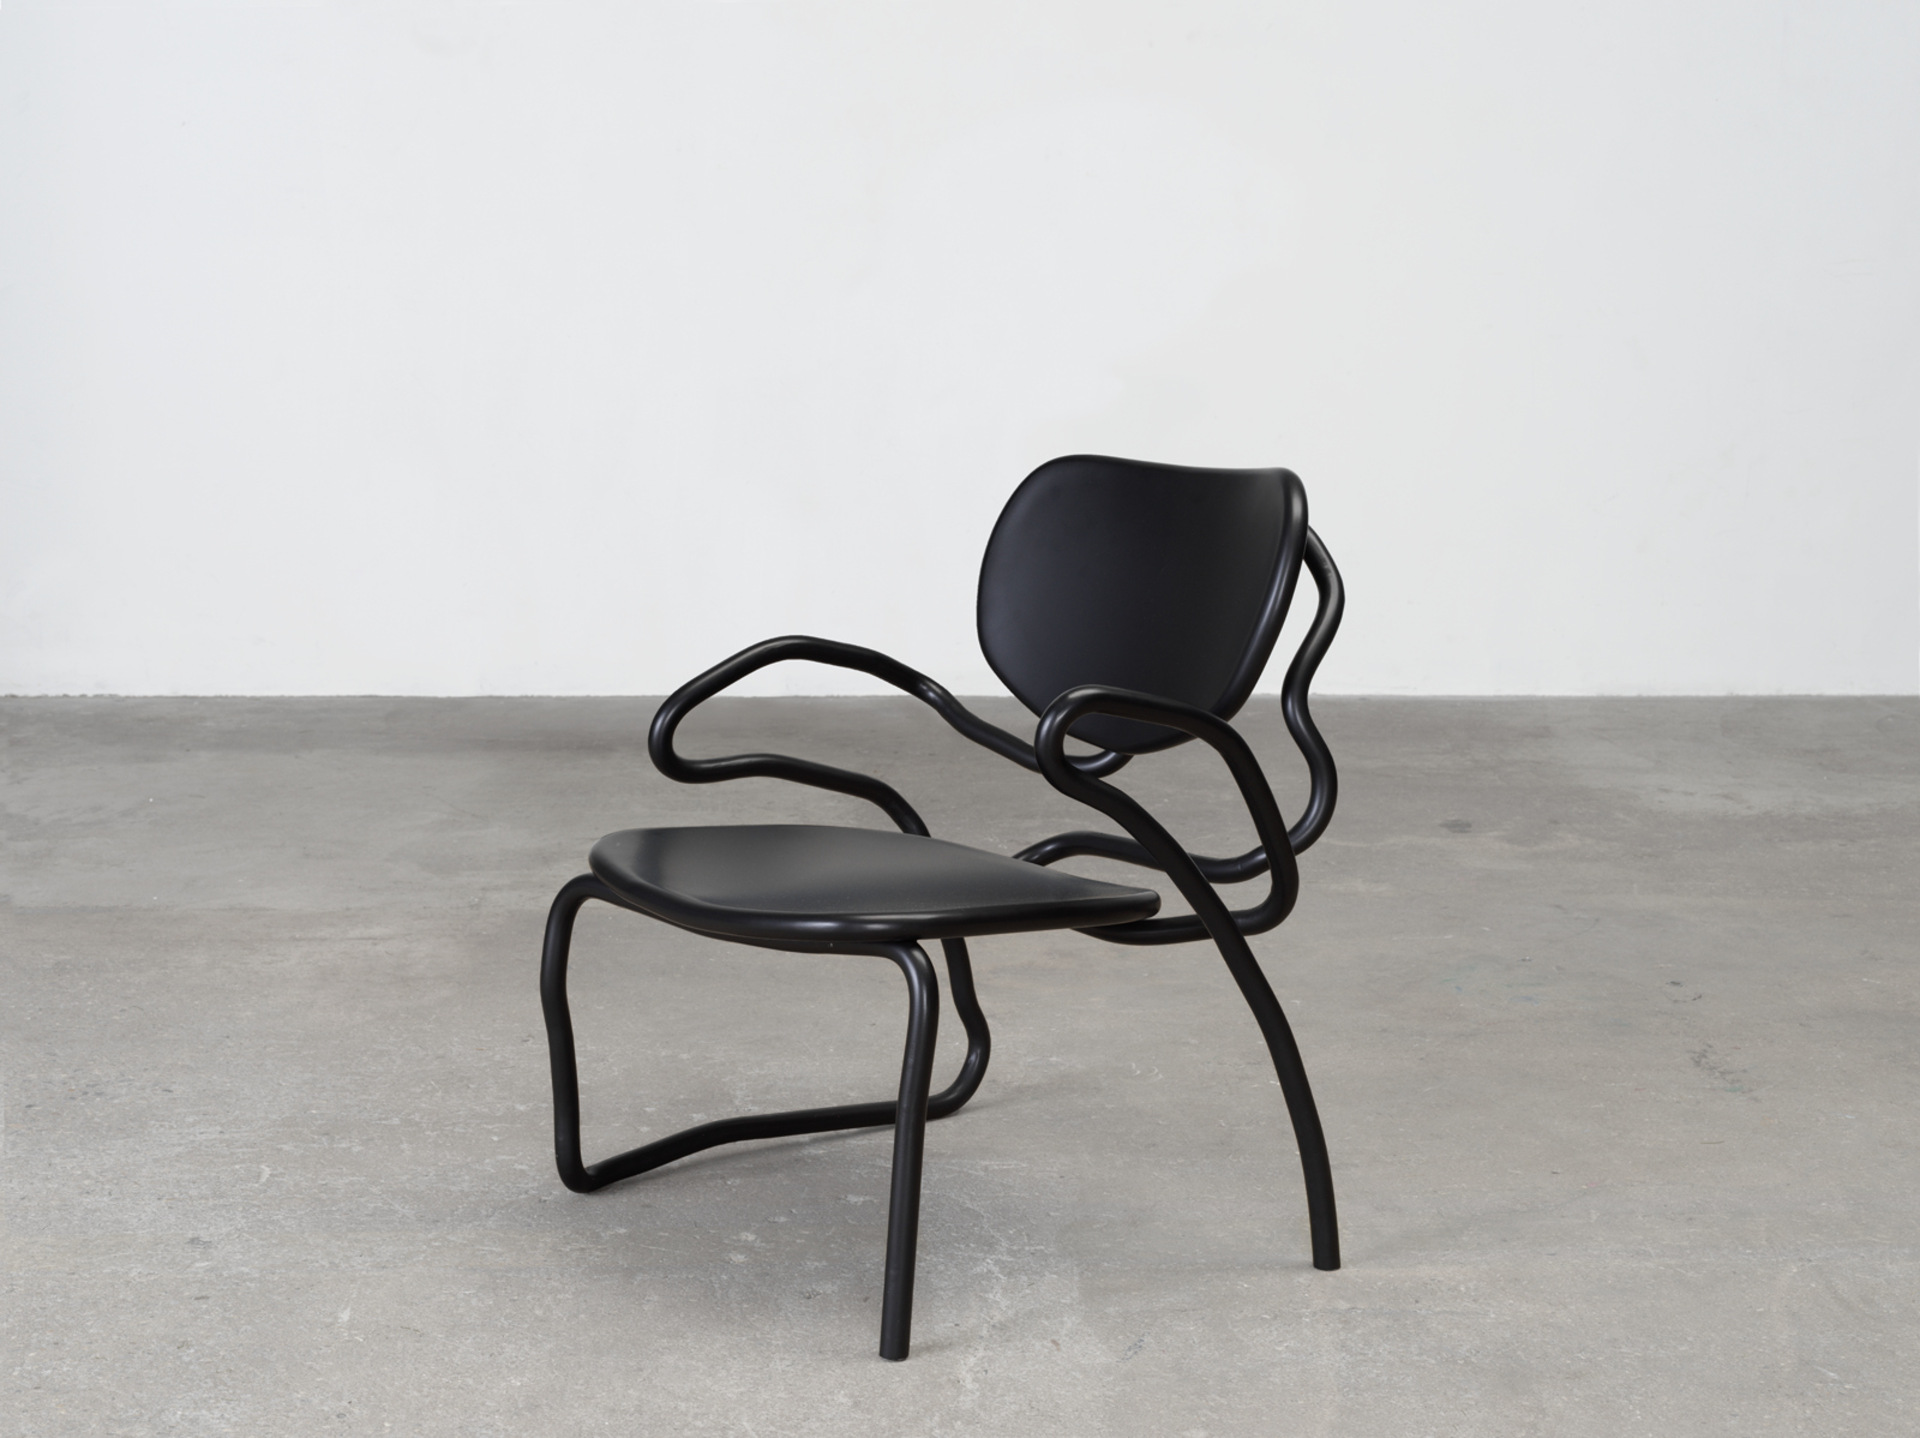 Untitled (Prototype for Chair)